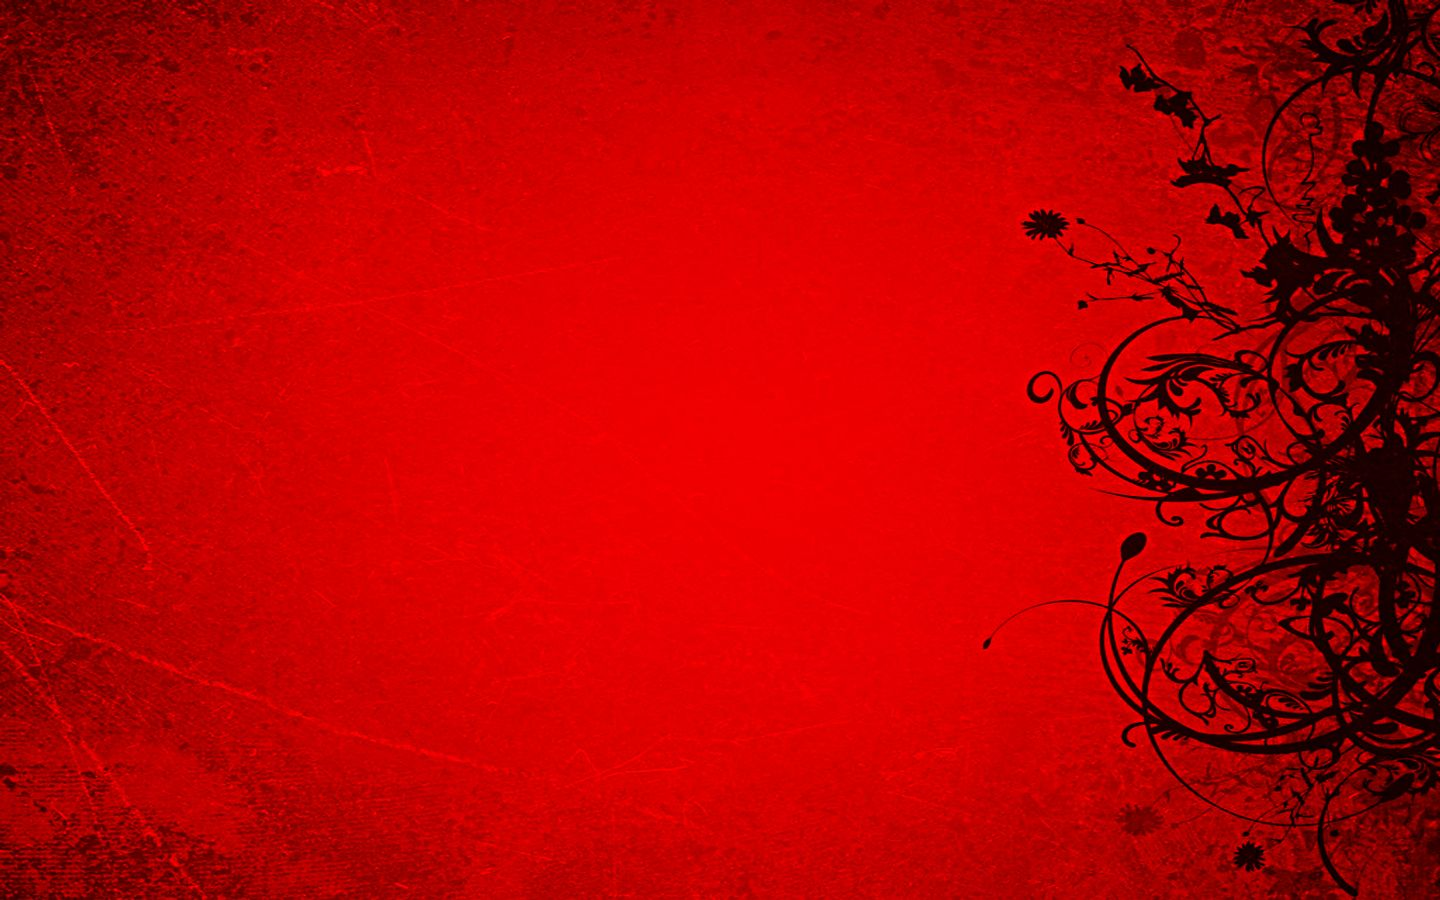 Pictures of red backgrounds wallpapersafari for Red wallpaper ideas